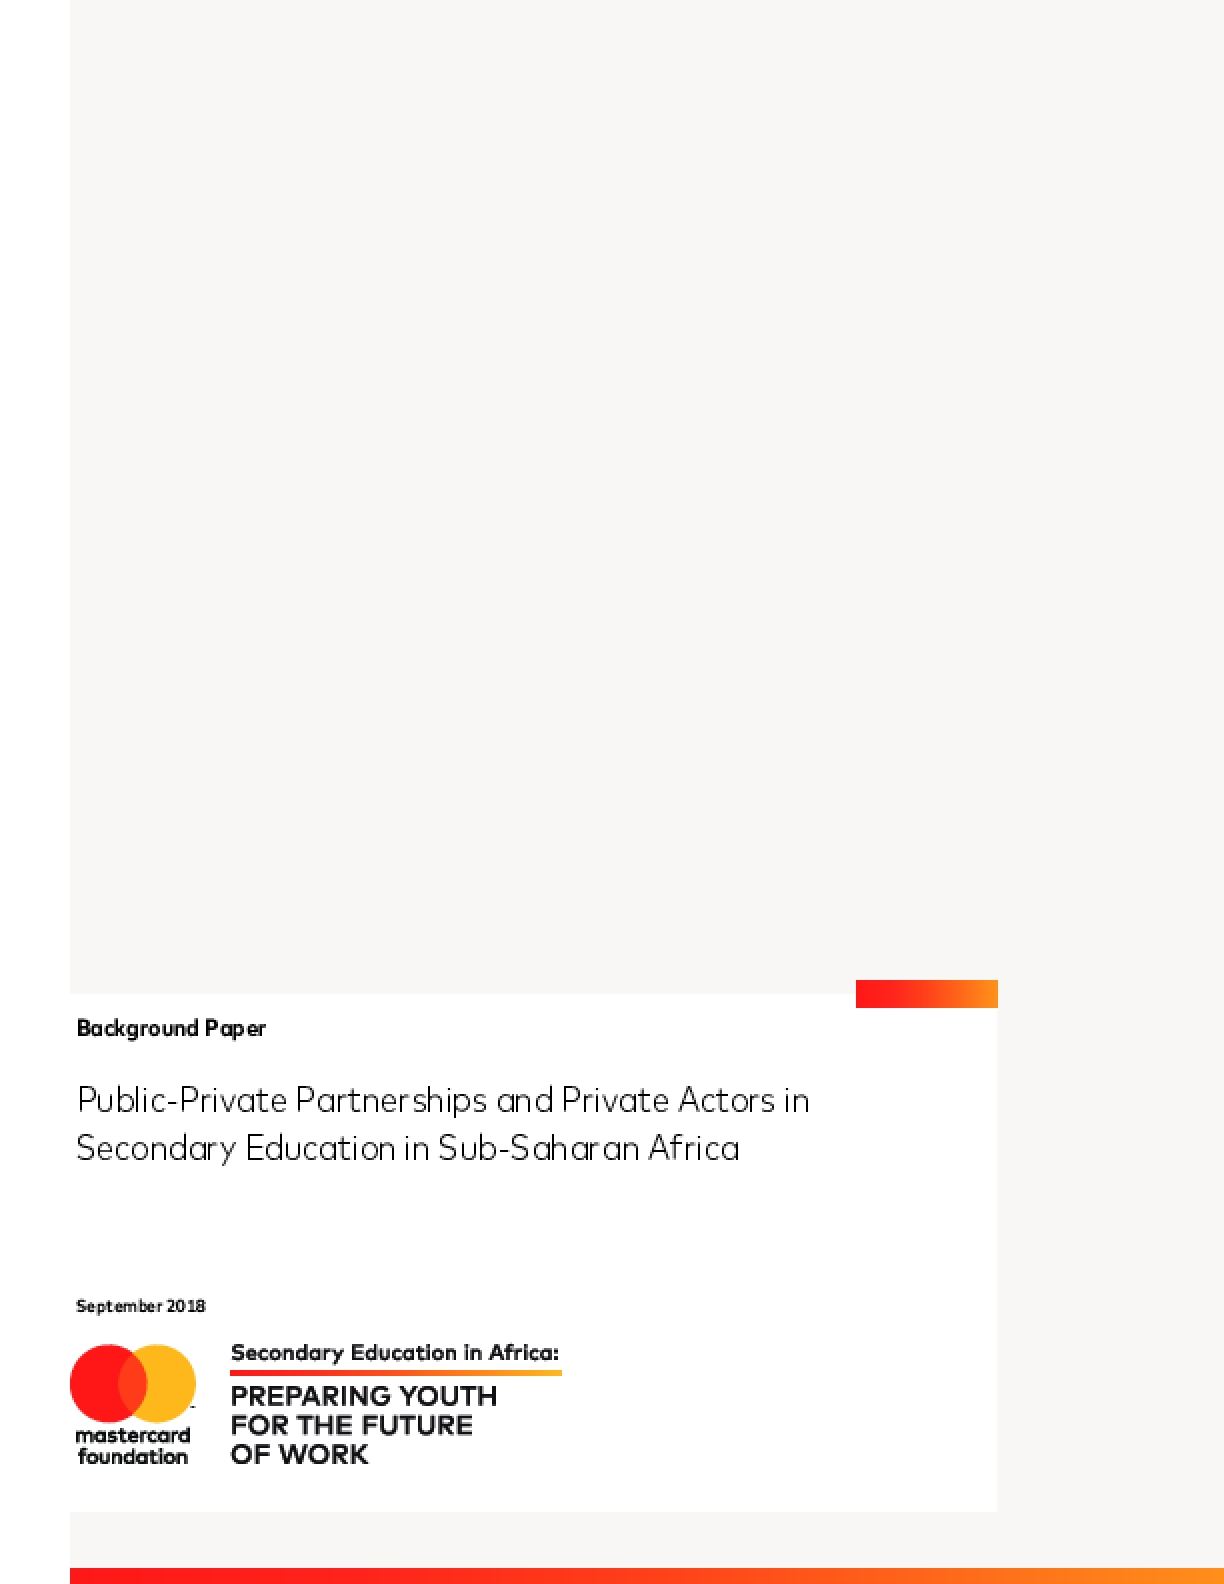 Public-Private Partnerships and Private Actors in Secondary Education in Sub-Saharan Africa